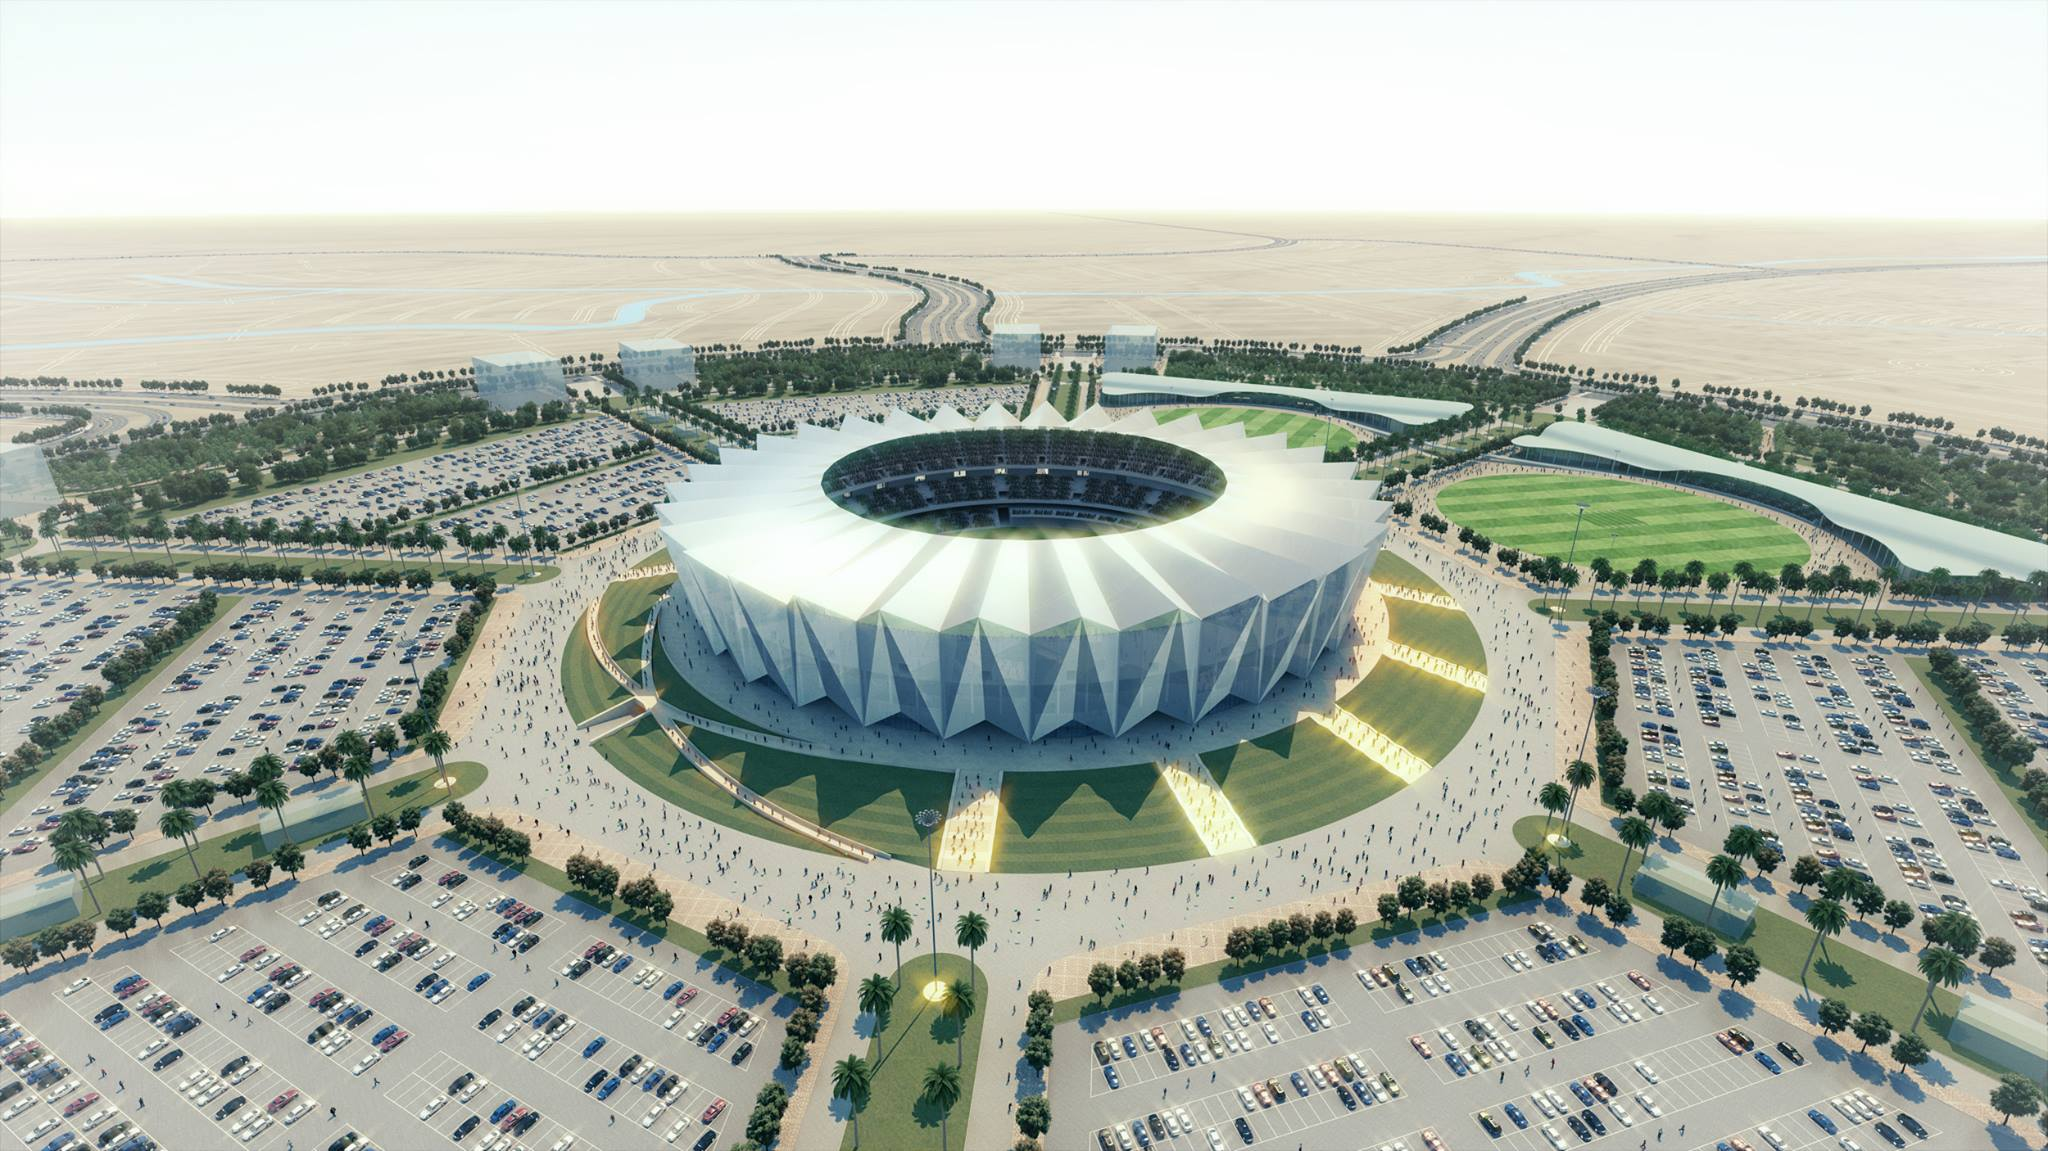 Bahria Town Karachi Unveils Design for Pakistan's Largest International Cricket Stadium (4)